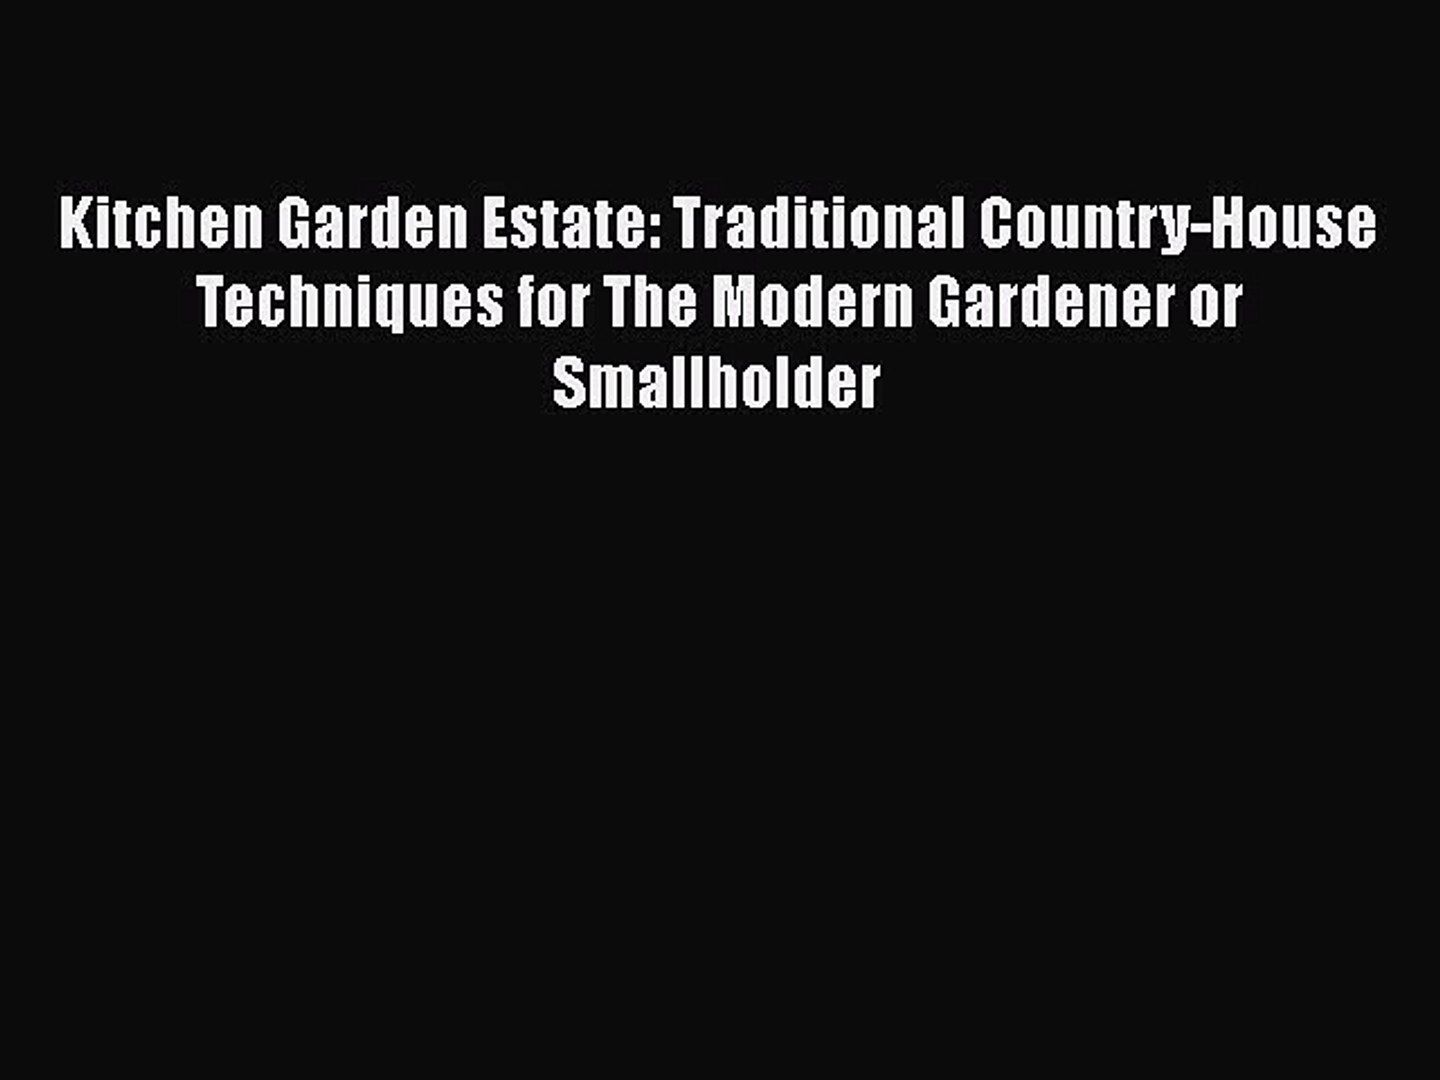 [DONWLOAD] Kitchen Garden Estate: Traditional Country-House Techniques for The Modern Gardener